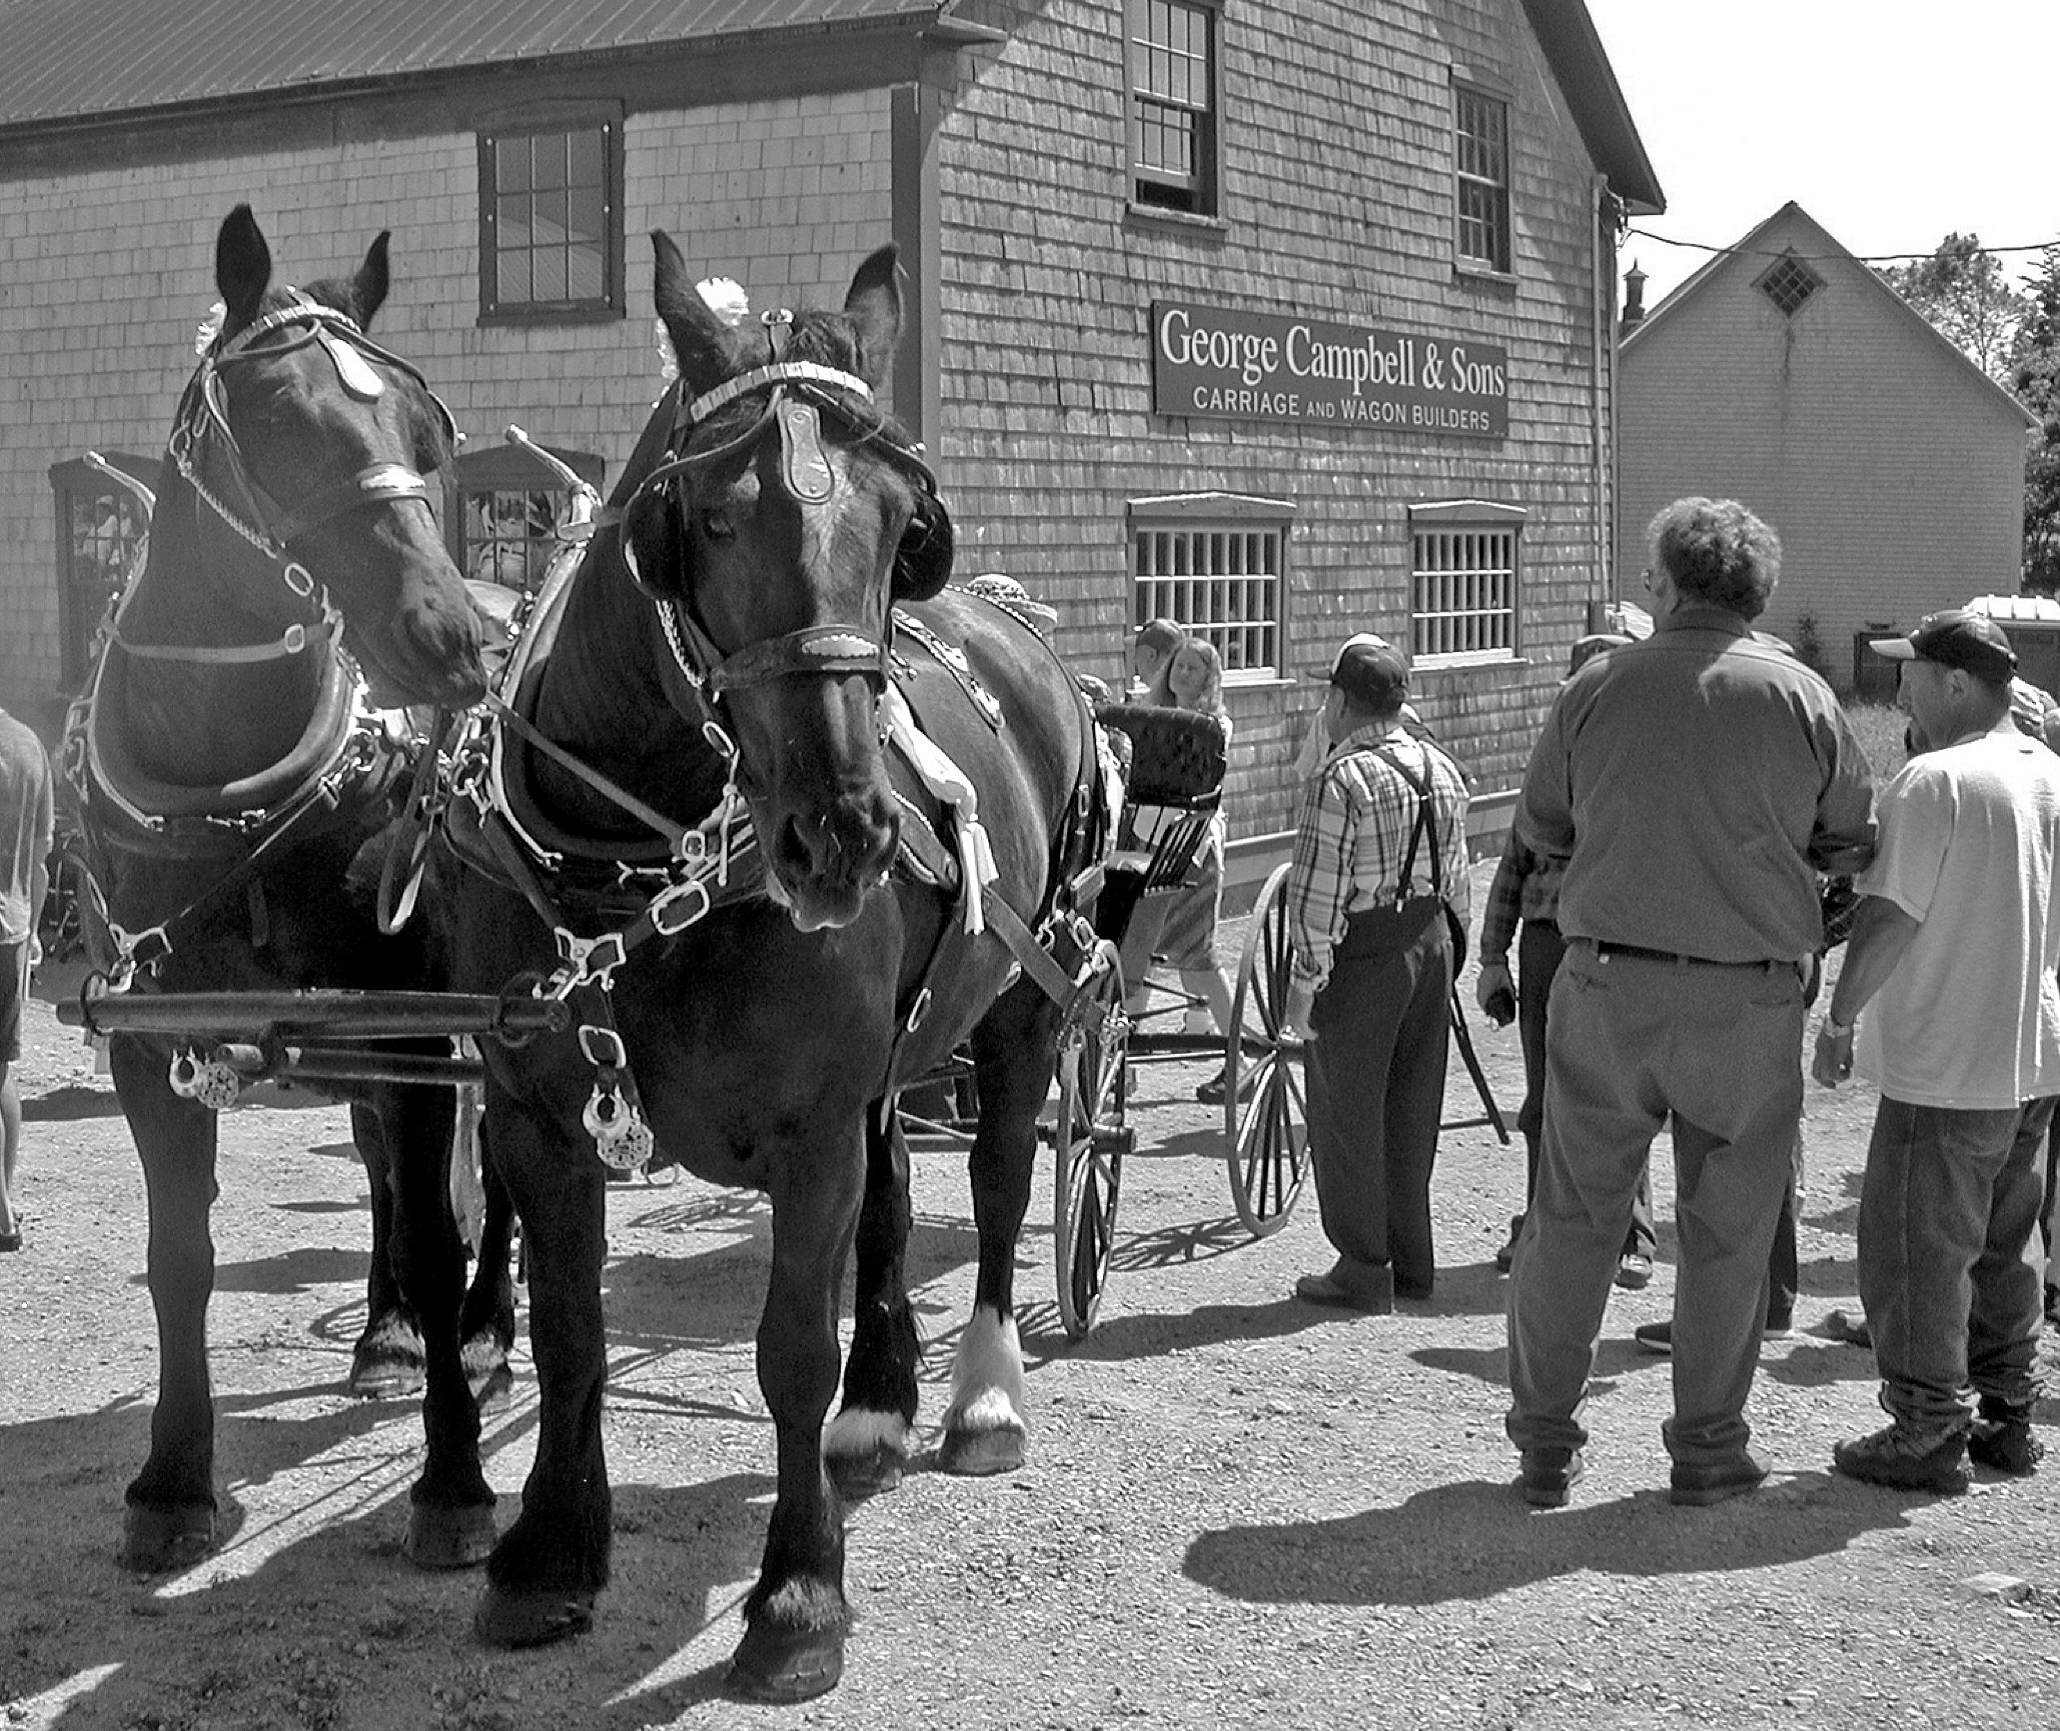 Horses and carriage at opening of Carriage Factory Museum